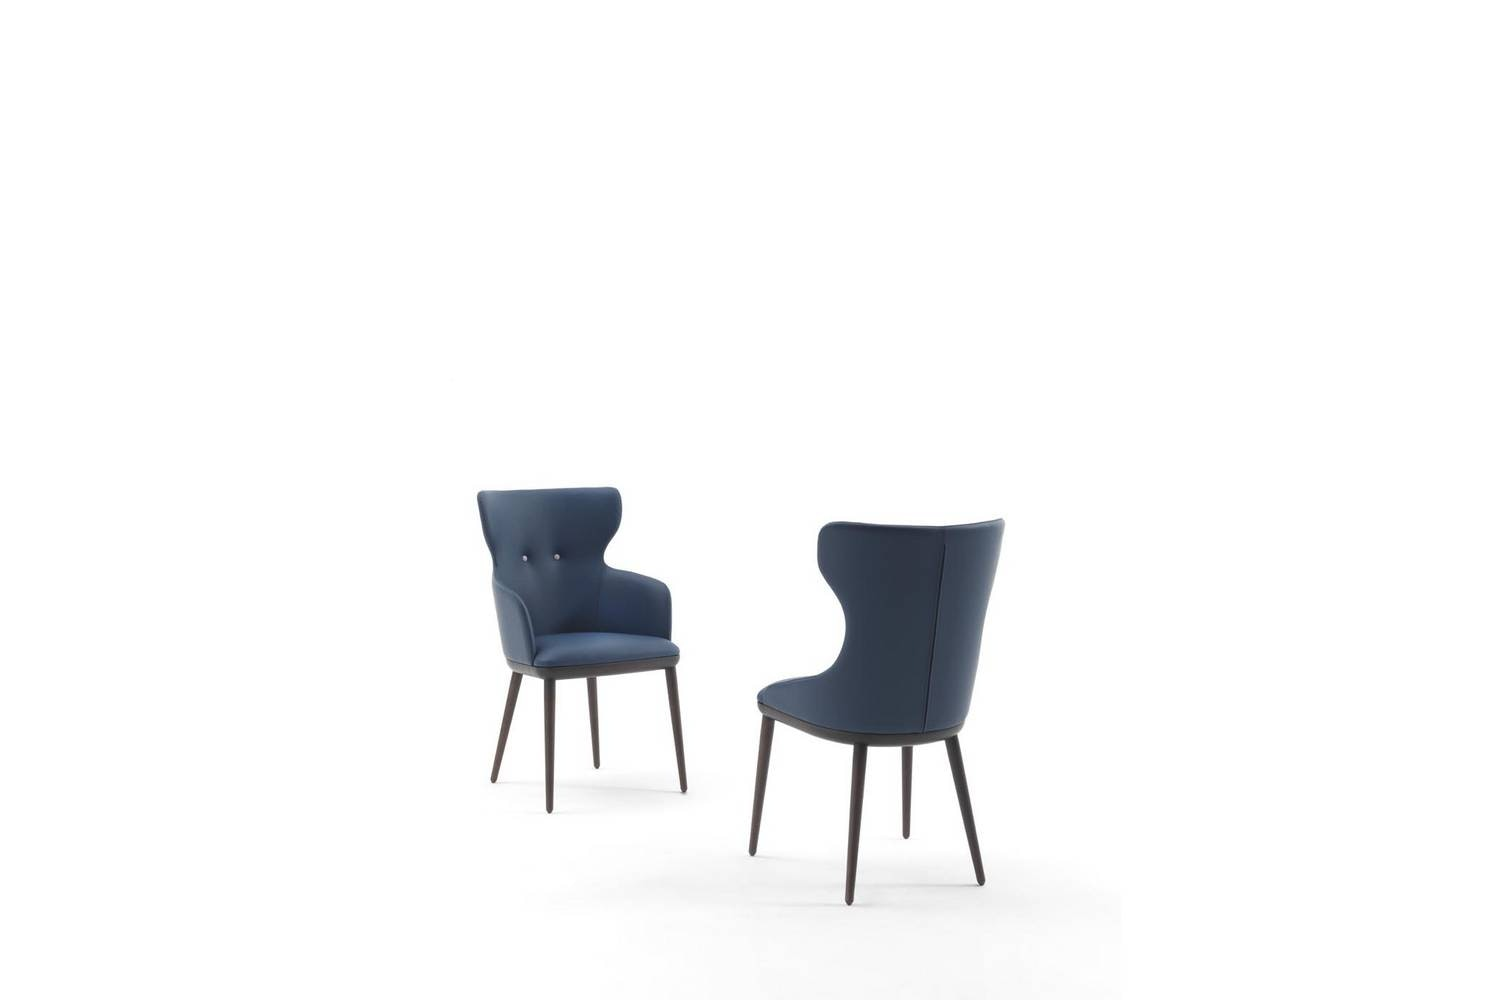 Andy Chair by C. Ballabio for Porada